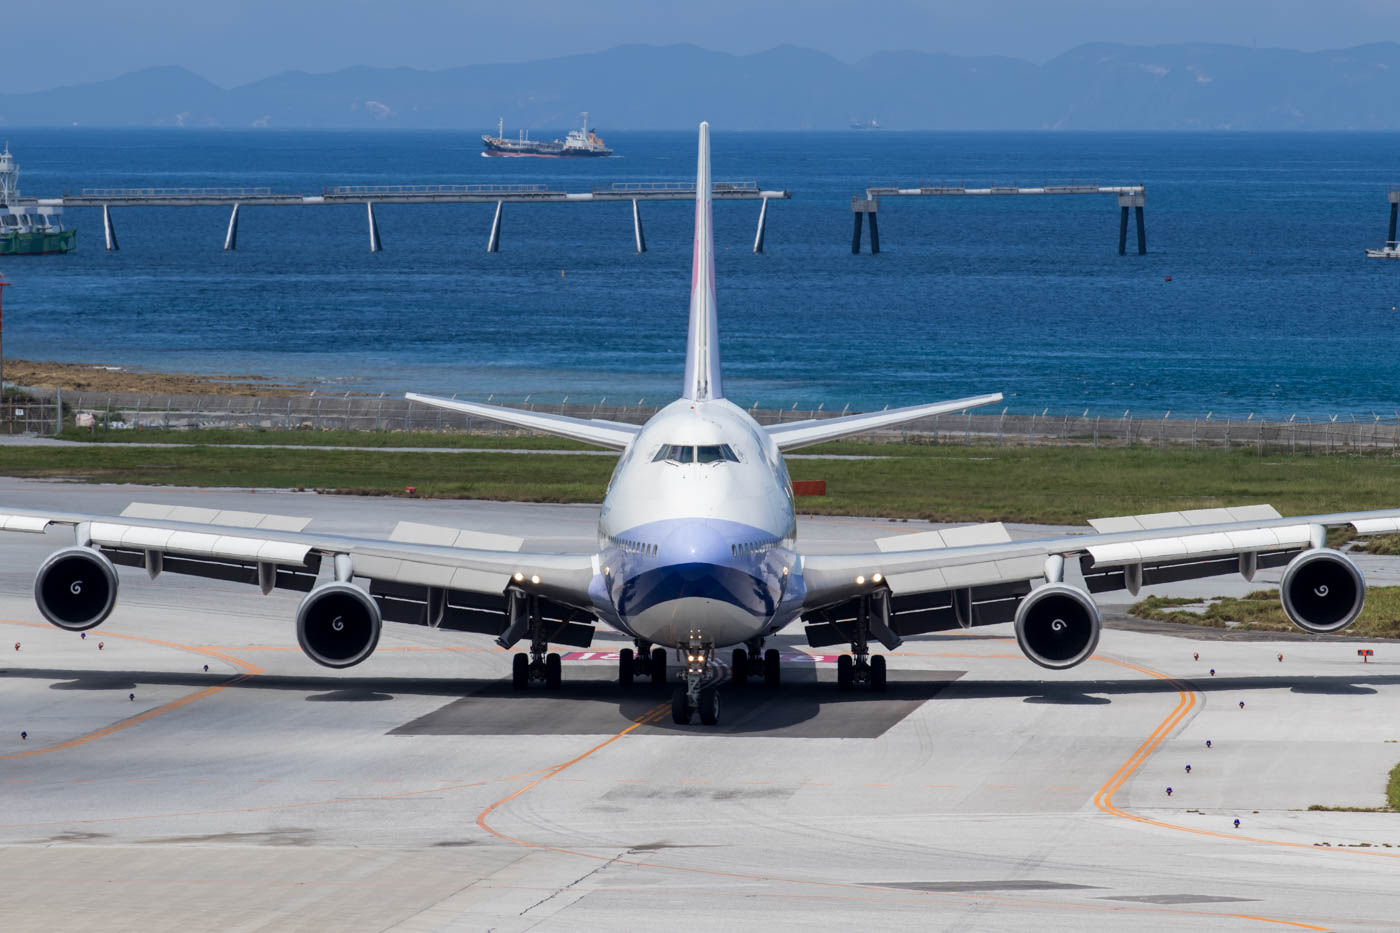 China Airlines 747-400 at Naha